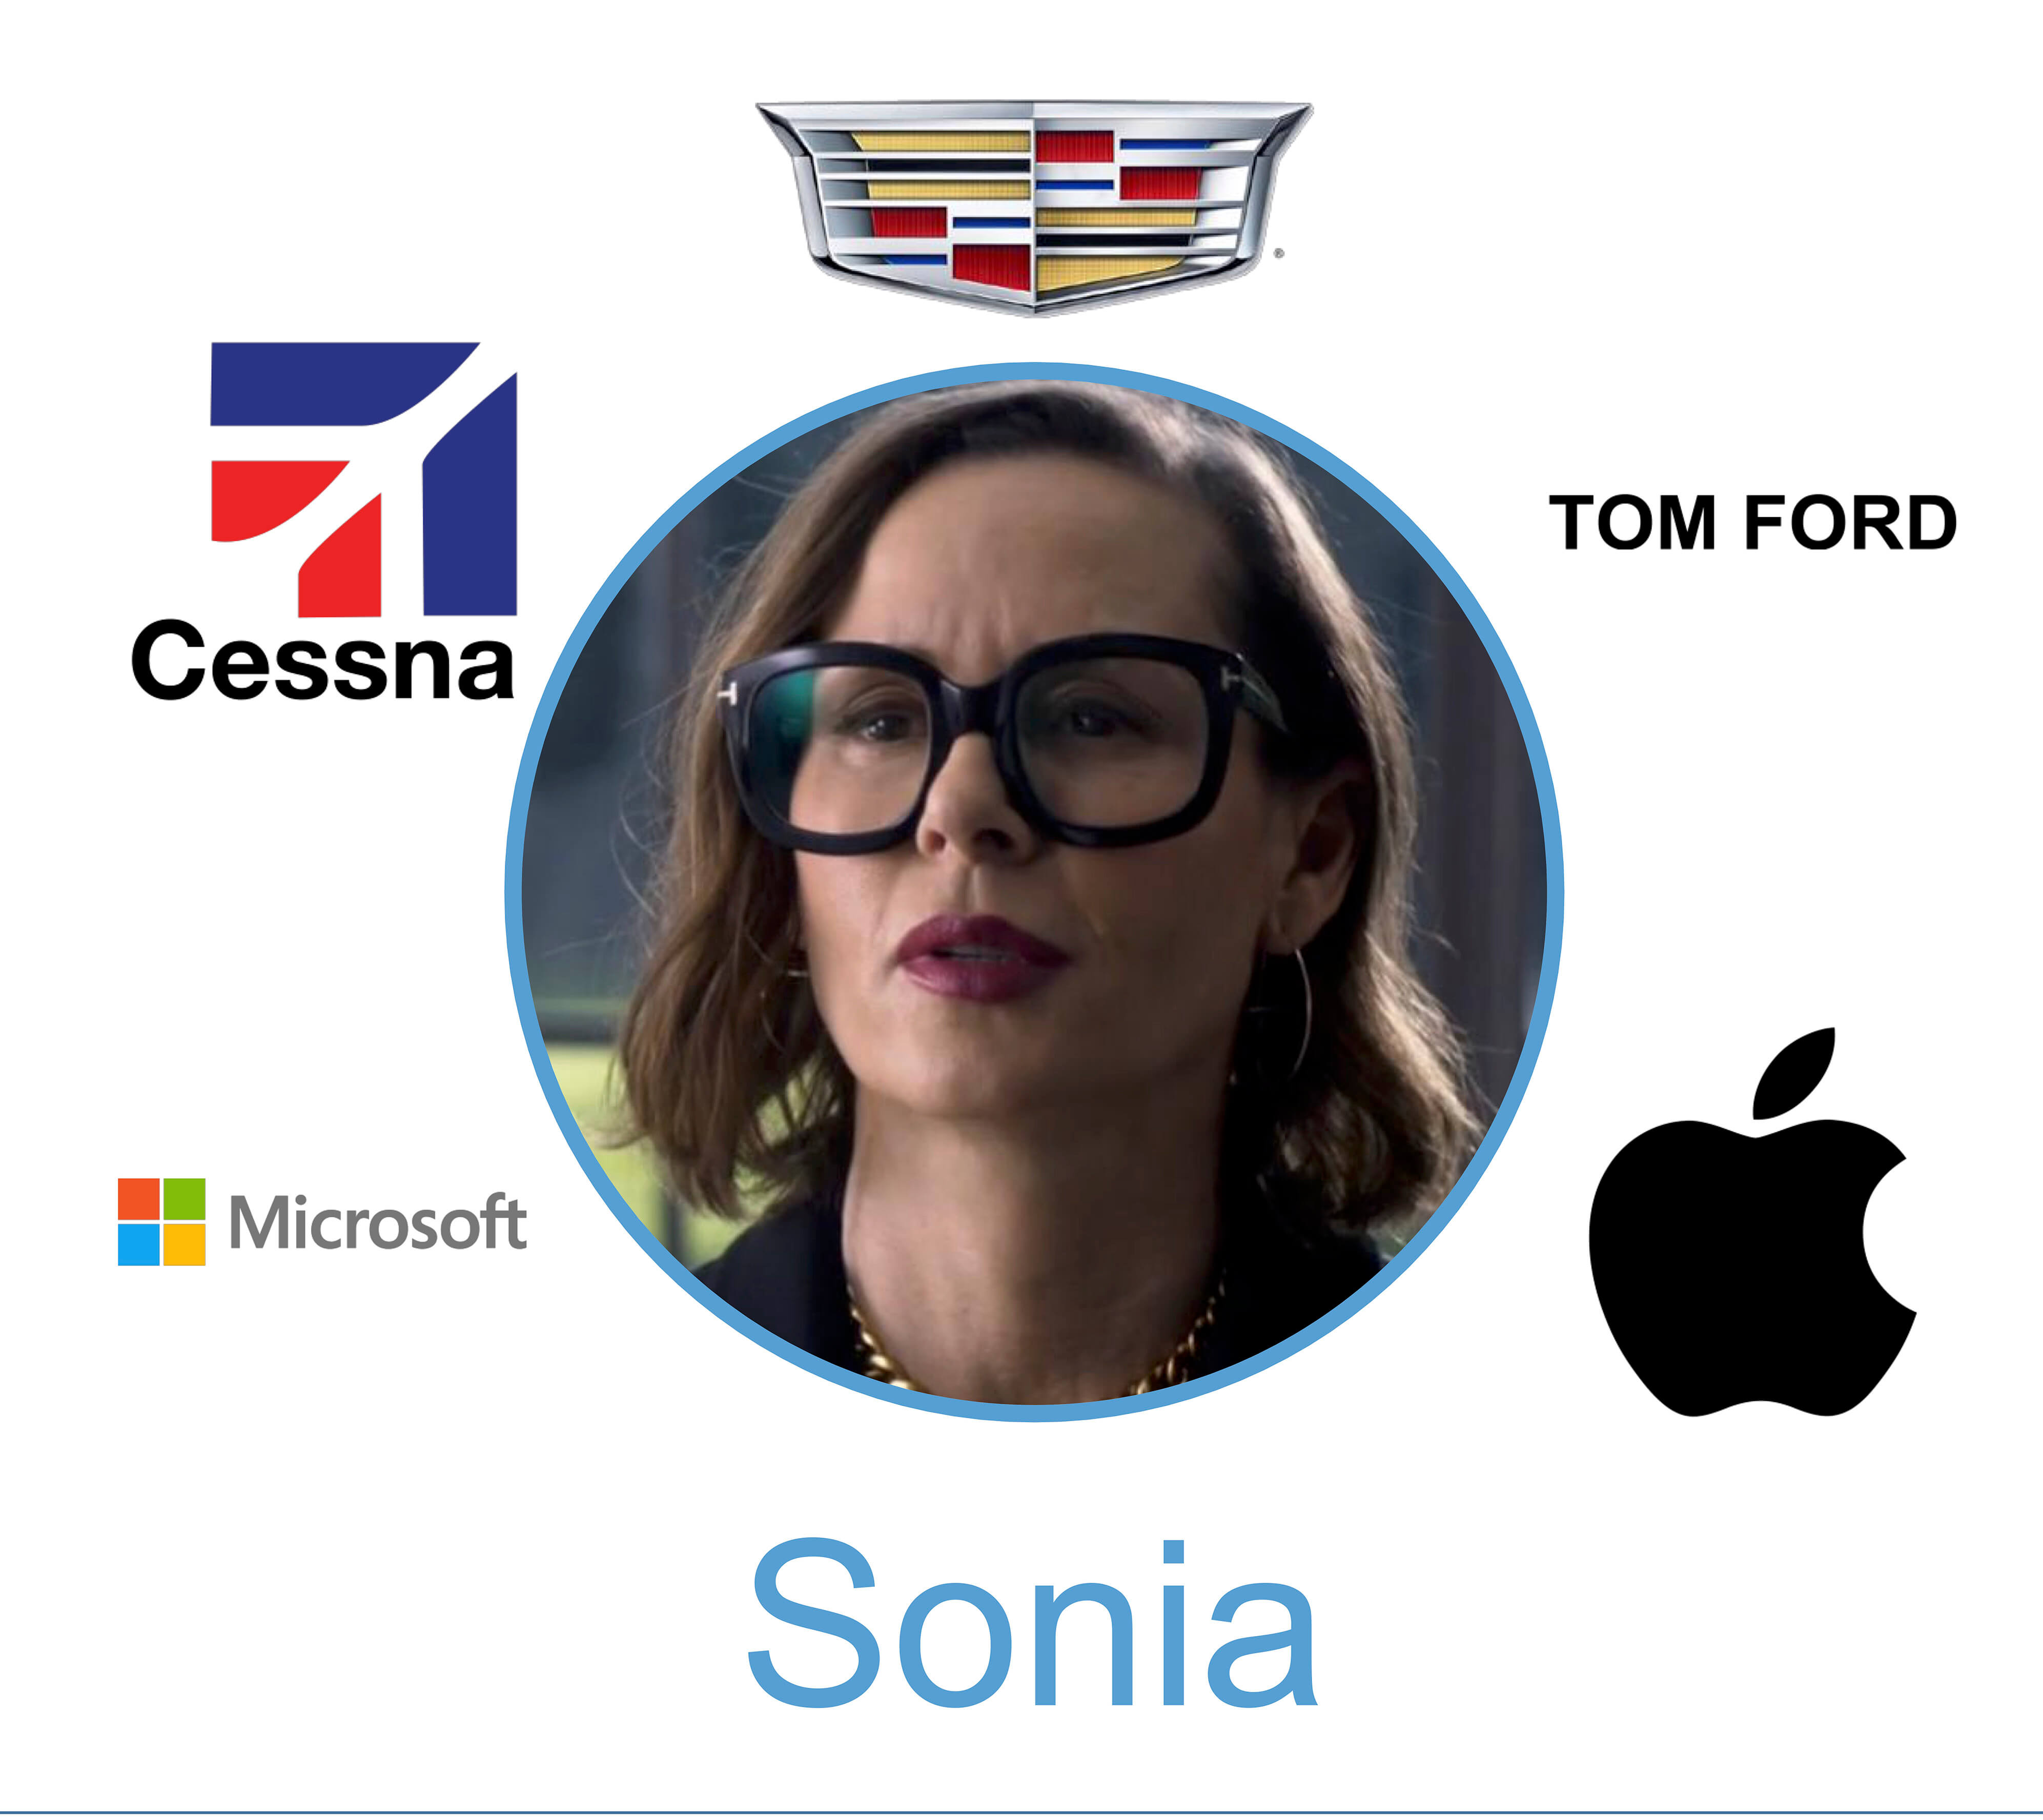 sonia brands product placment ray donovan season 4 tom ford microsoft appl cessna